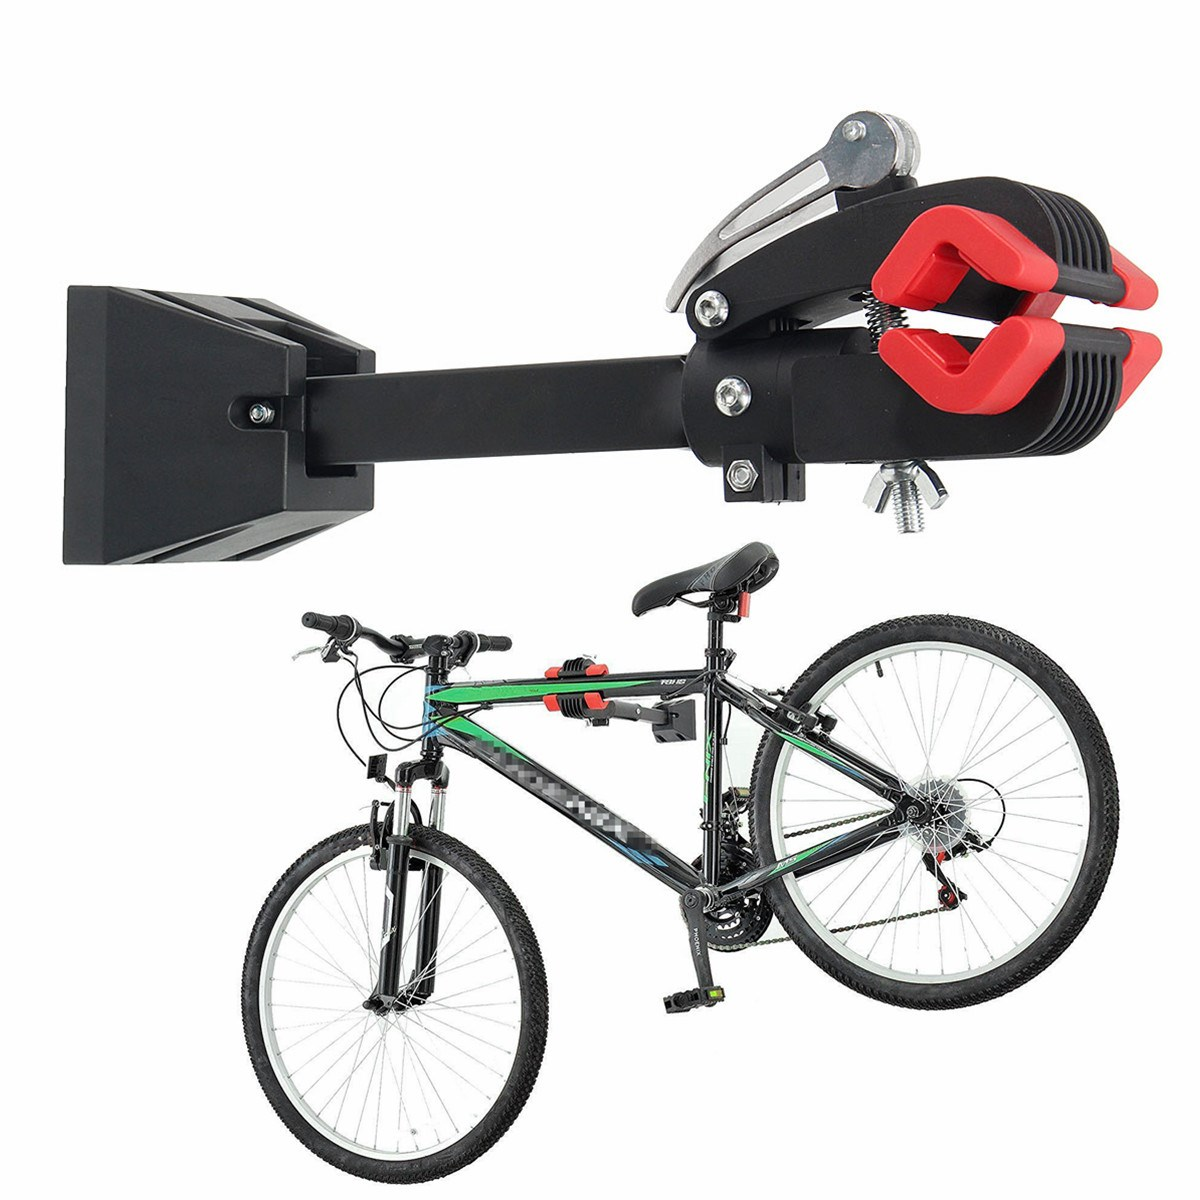 outerdo wall mount heavy duty bike bicycle maintenance. Black Bedroom Furniture Sets. Home Design Ideas